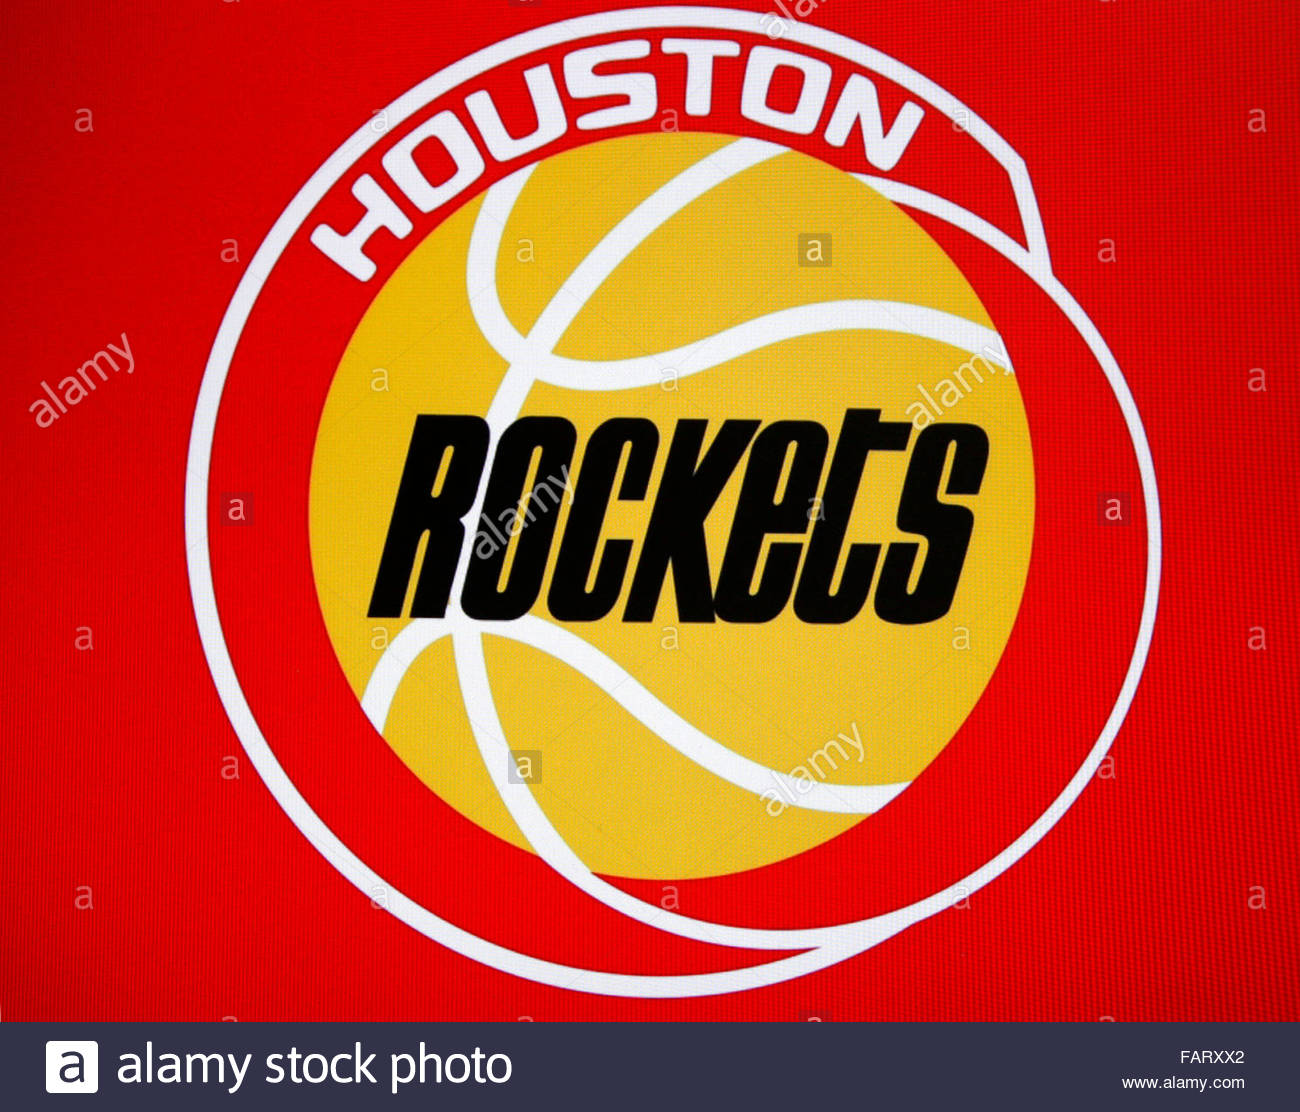 Markenname: 'Houston Rockets', Berlin. - Stock Image